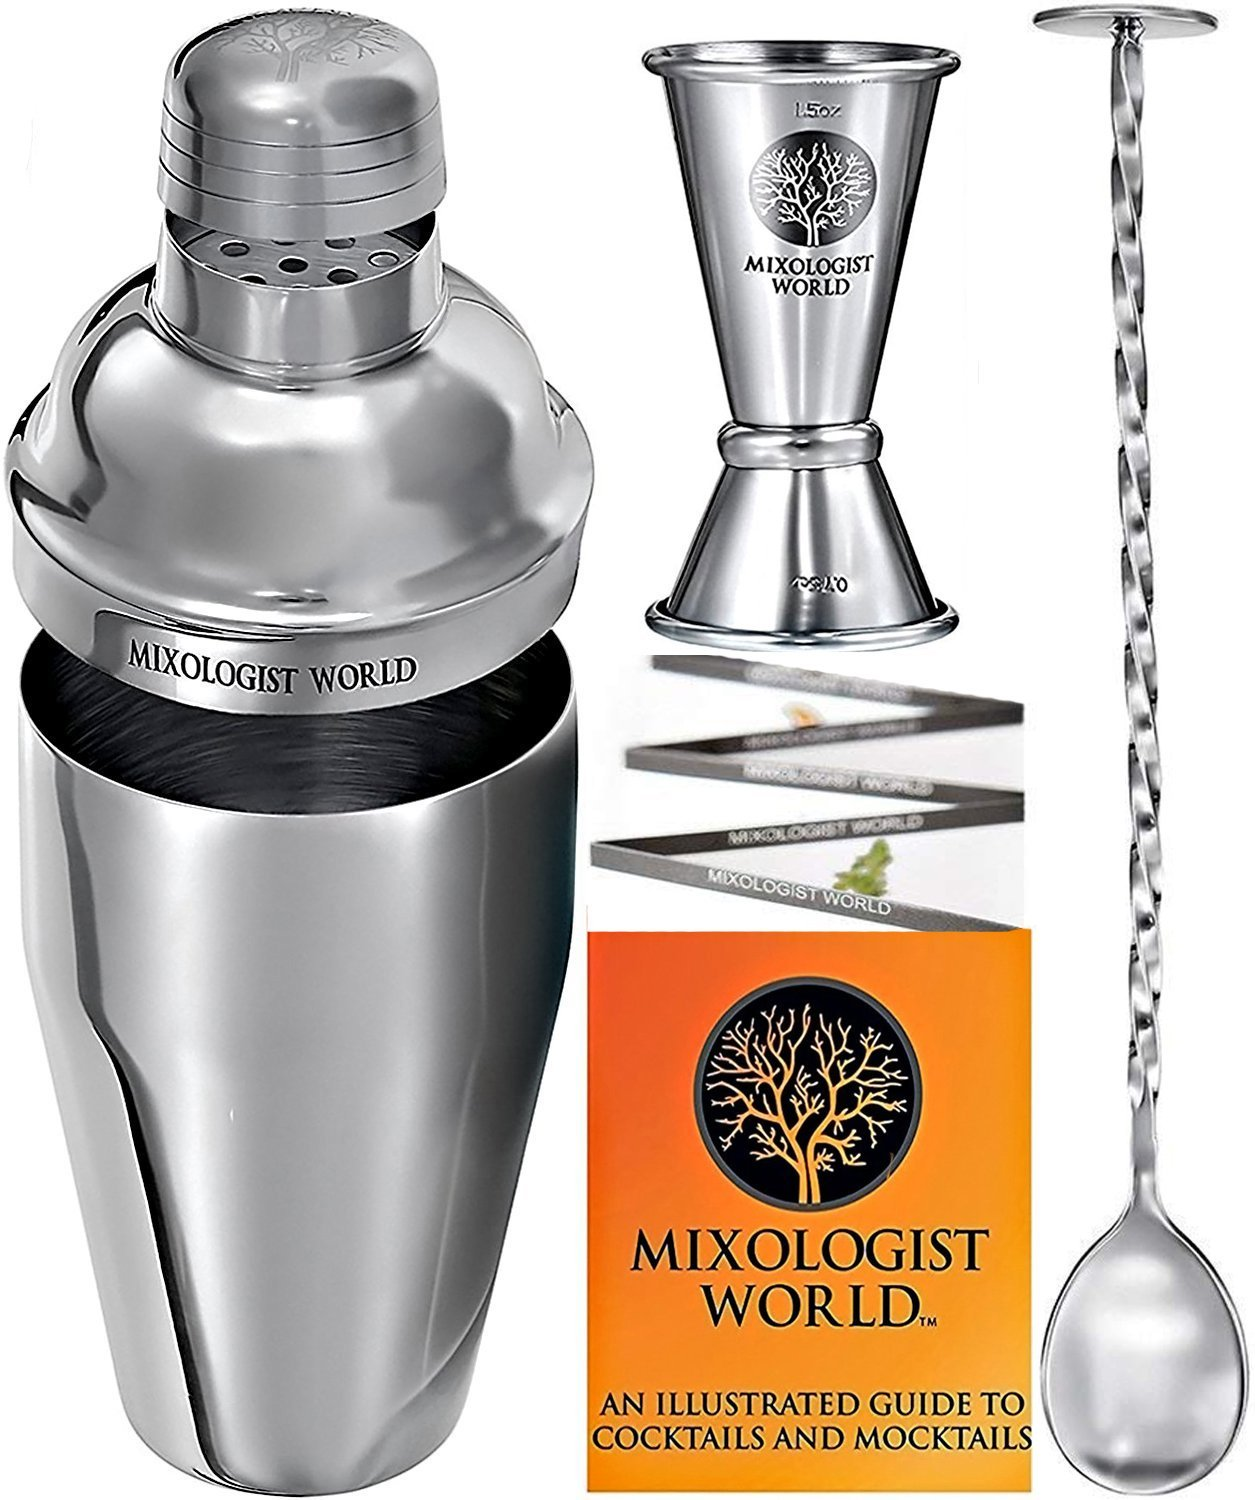 Cocktail Shaker Bar Tools - Built-in Strainer Set with Double Jigger, Mixing Spoon and Drink Recipes Booklet - Premium Bartender Kit - 24 oz Bar Accessories Perfect for a Home Bar Cart MIXOLOGIST WORLD MW1730093BP